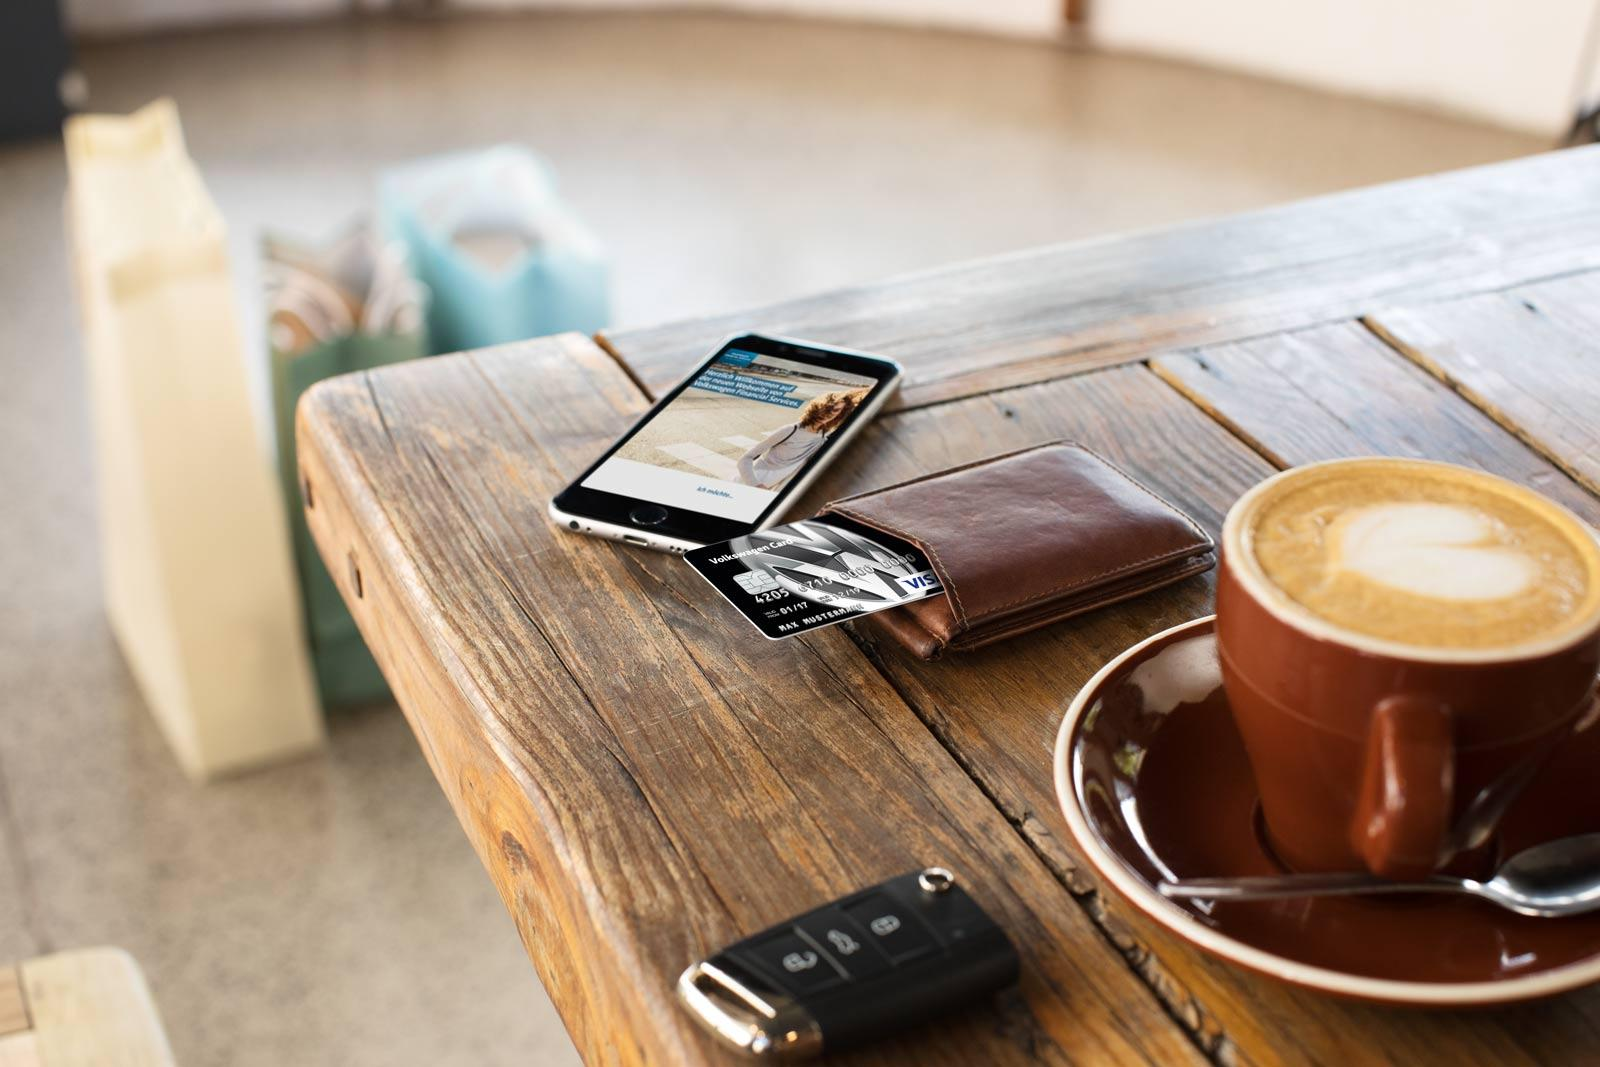 phone-and-wallet-with-black-credit-card-on-the-table